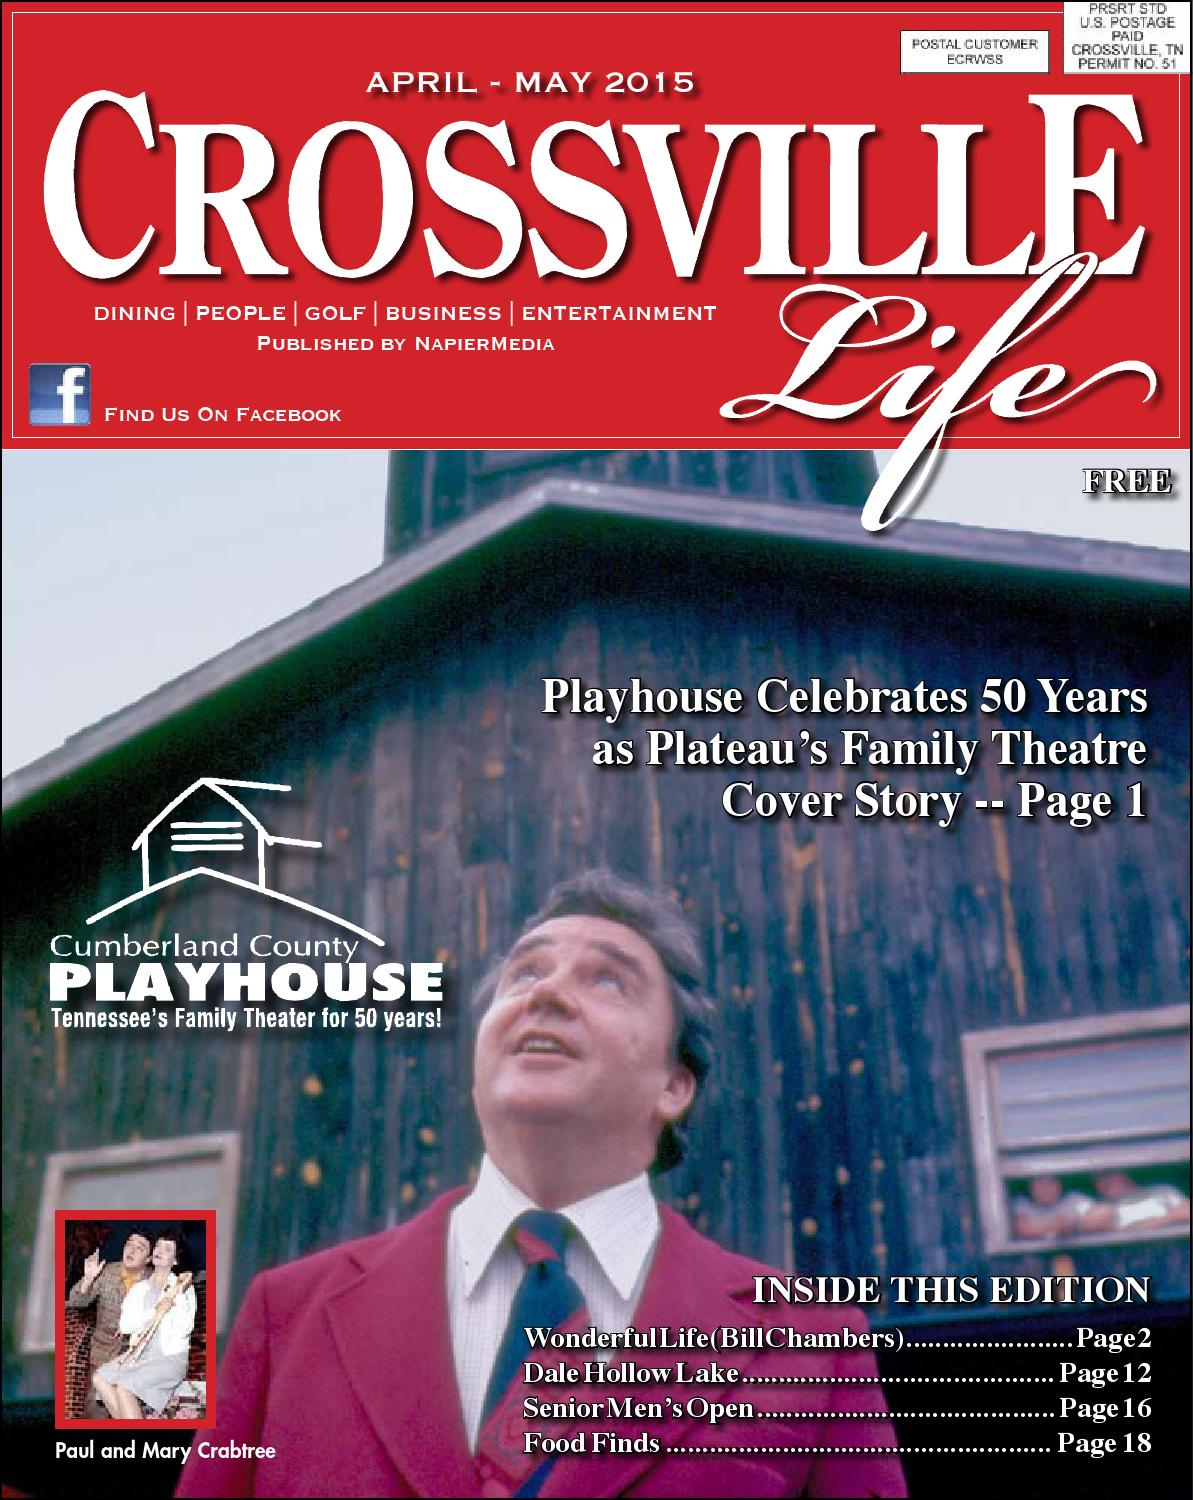 Healthgrades 50 Best Hospitals 2016: Crossvillelife, April-May 2015 By Weaver Web And Print